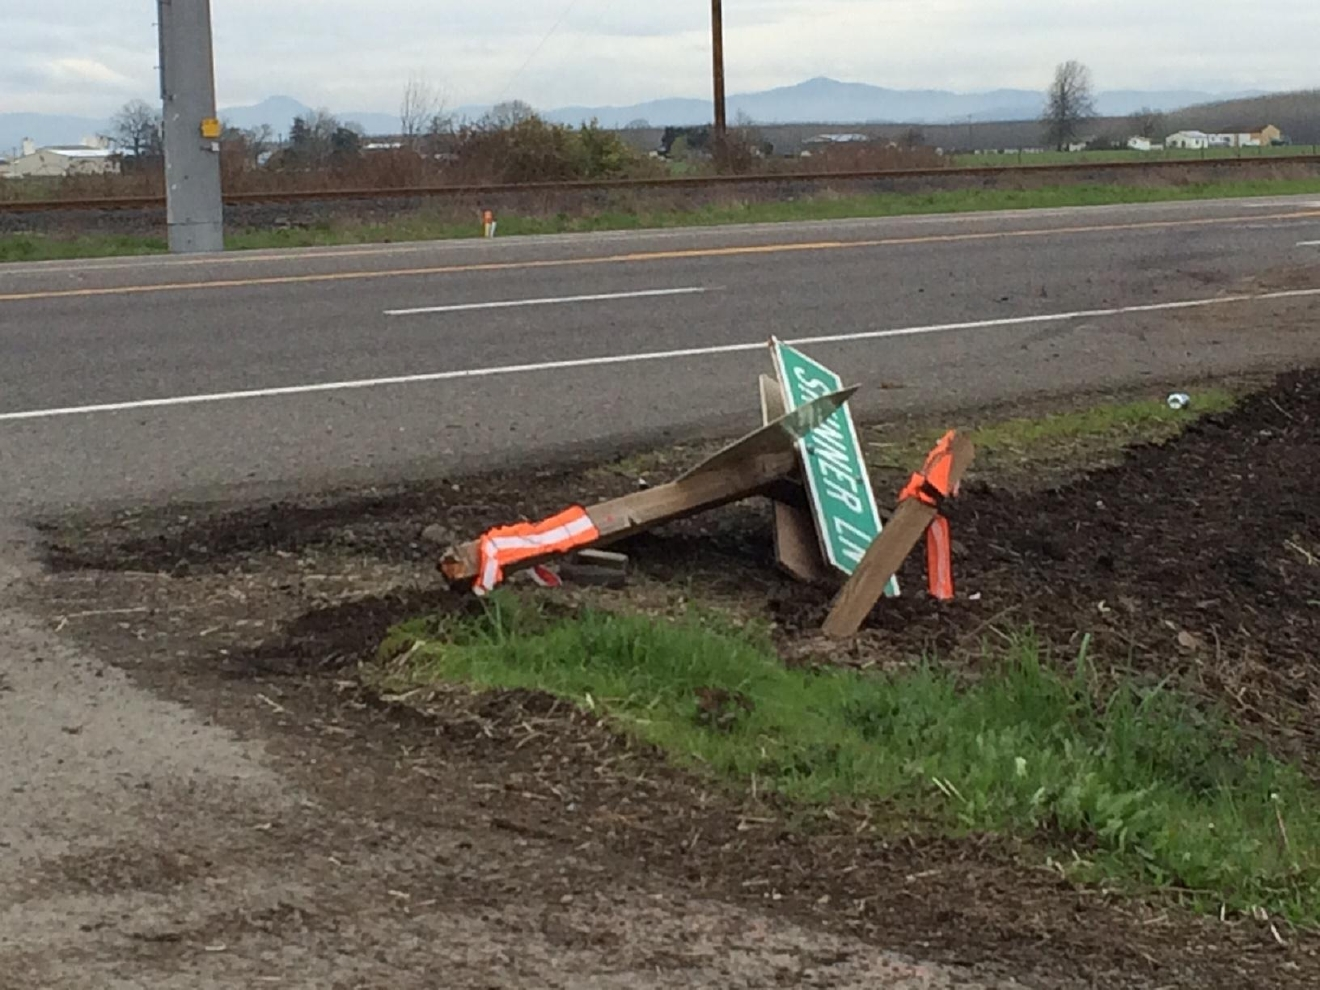 Emergency crews responded to a crash near Junction City on Highway 99 South on Friday before noon. (SBG photo)